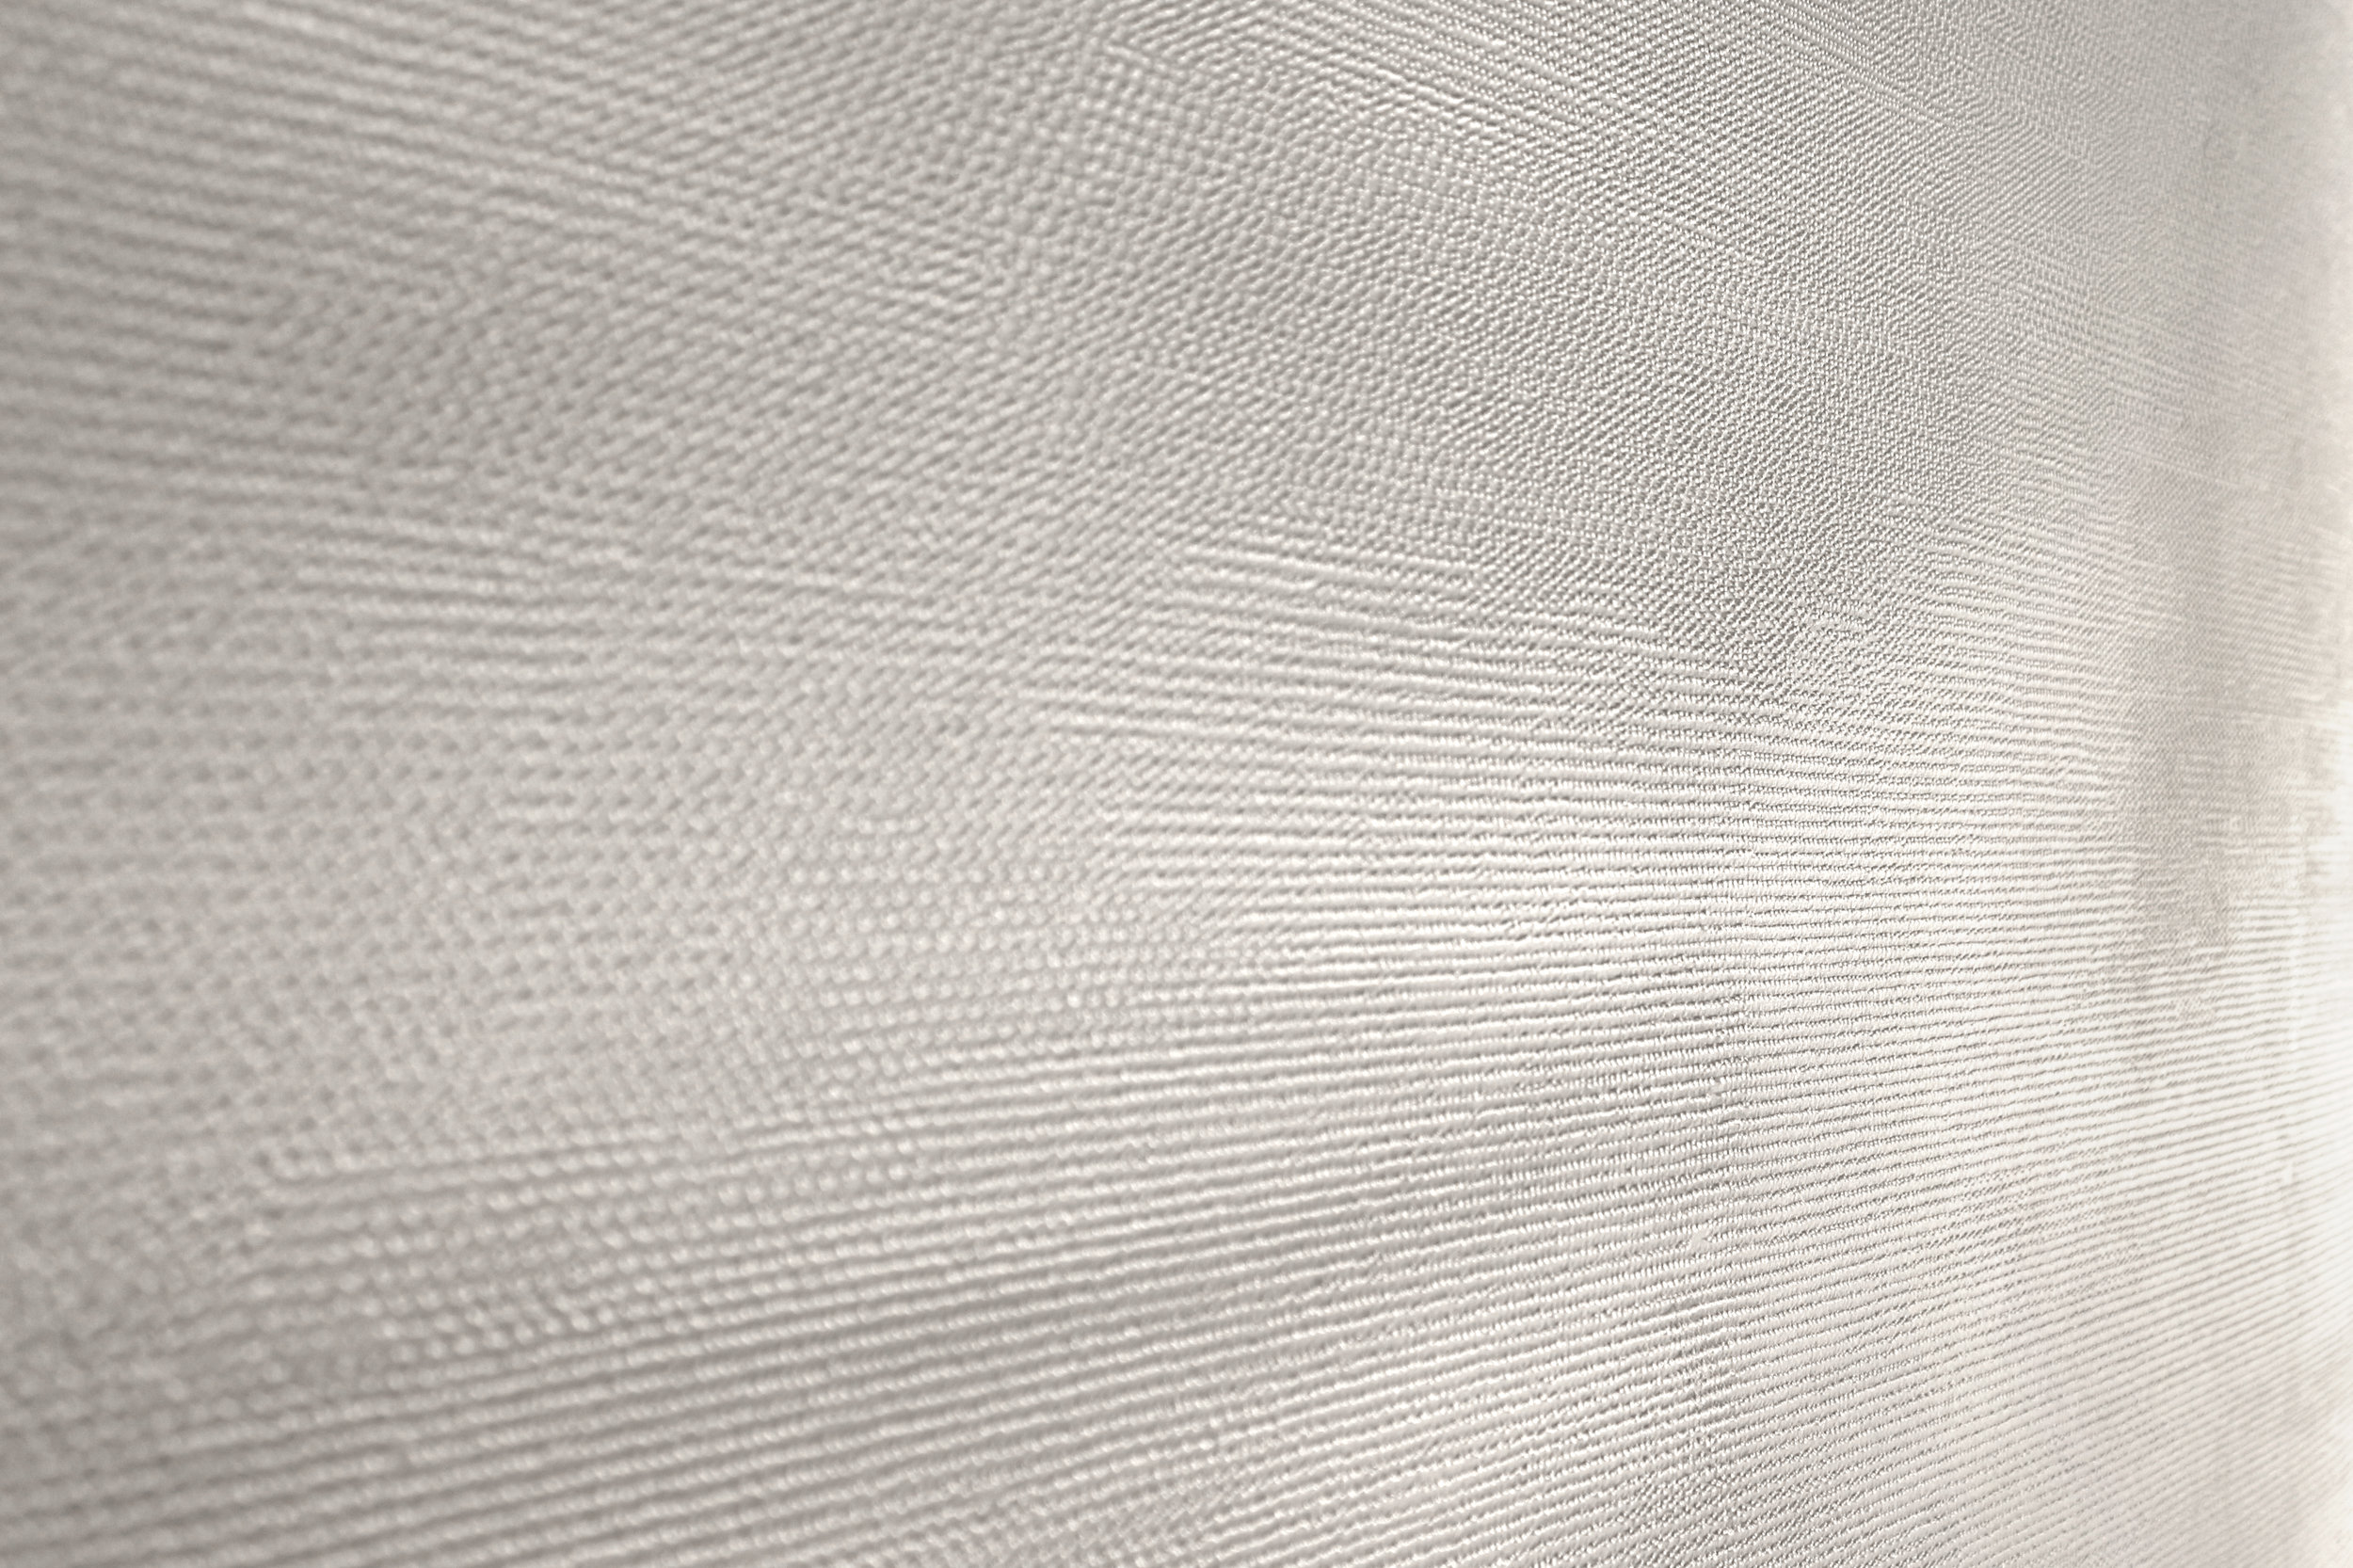 1.59  (detail), Perforated paper, 1.5 x 1.5 m, 2015.